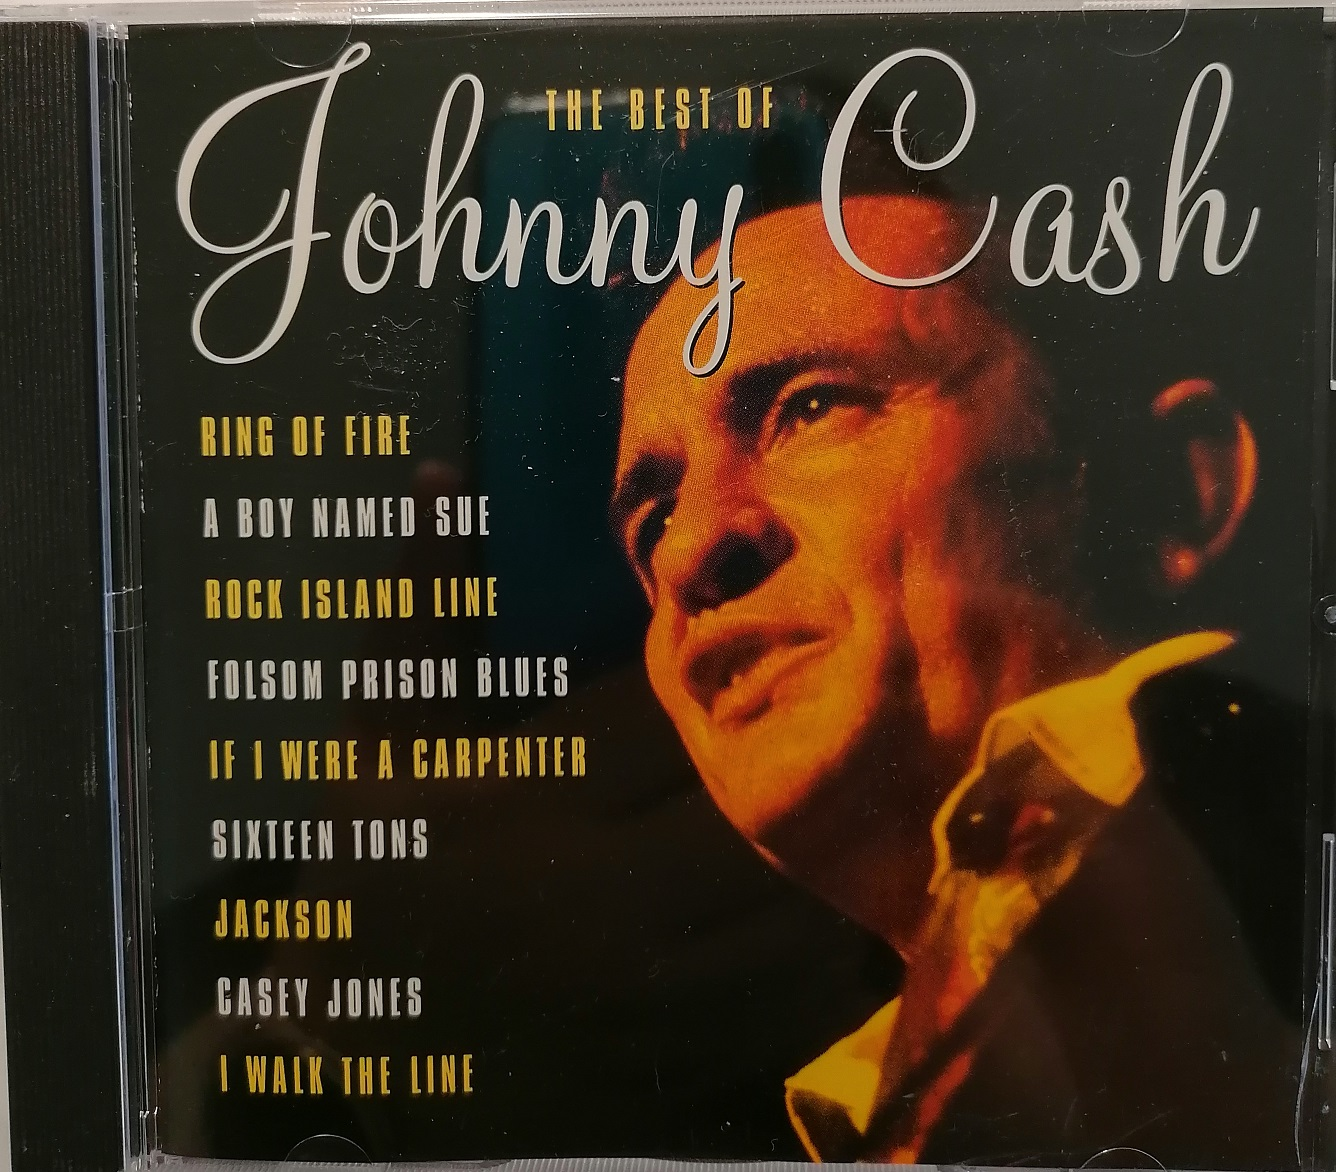 The best of Johnny Cash - CD